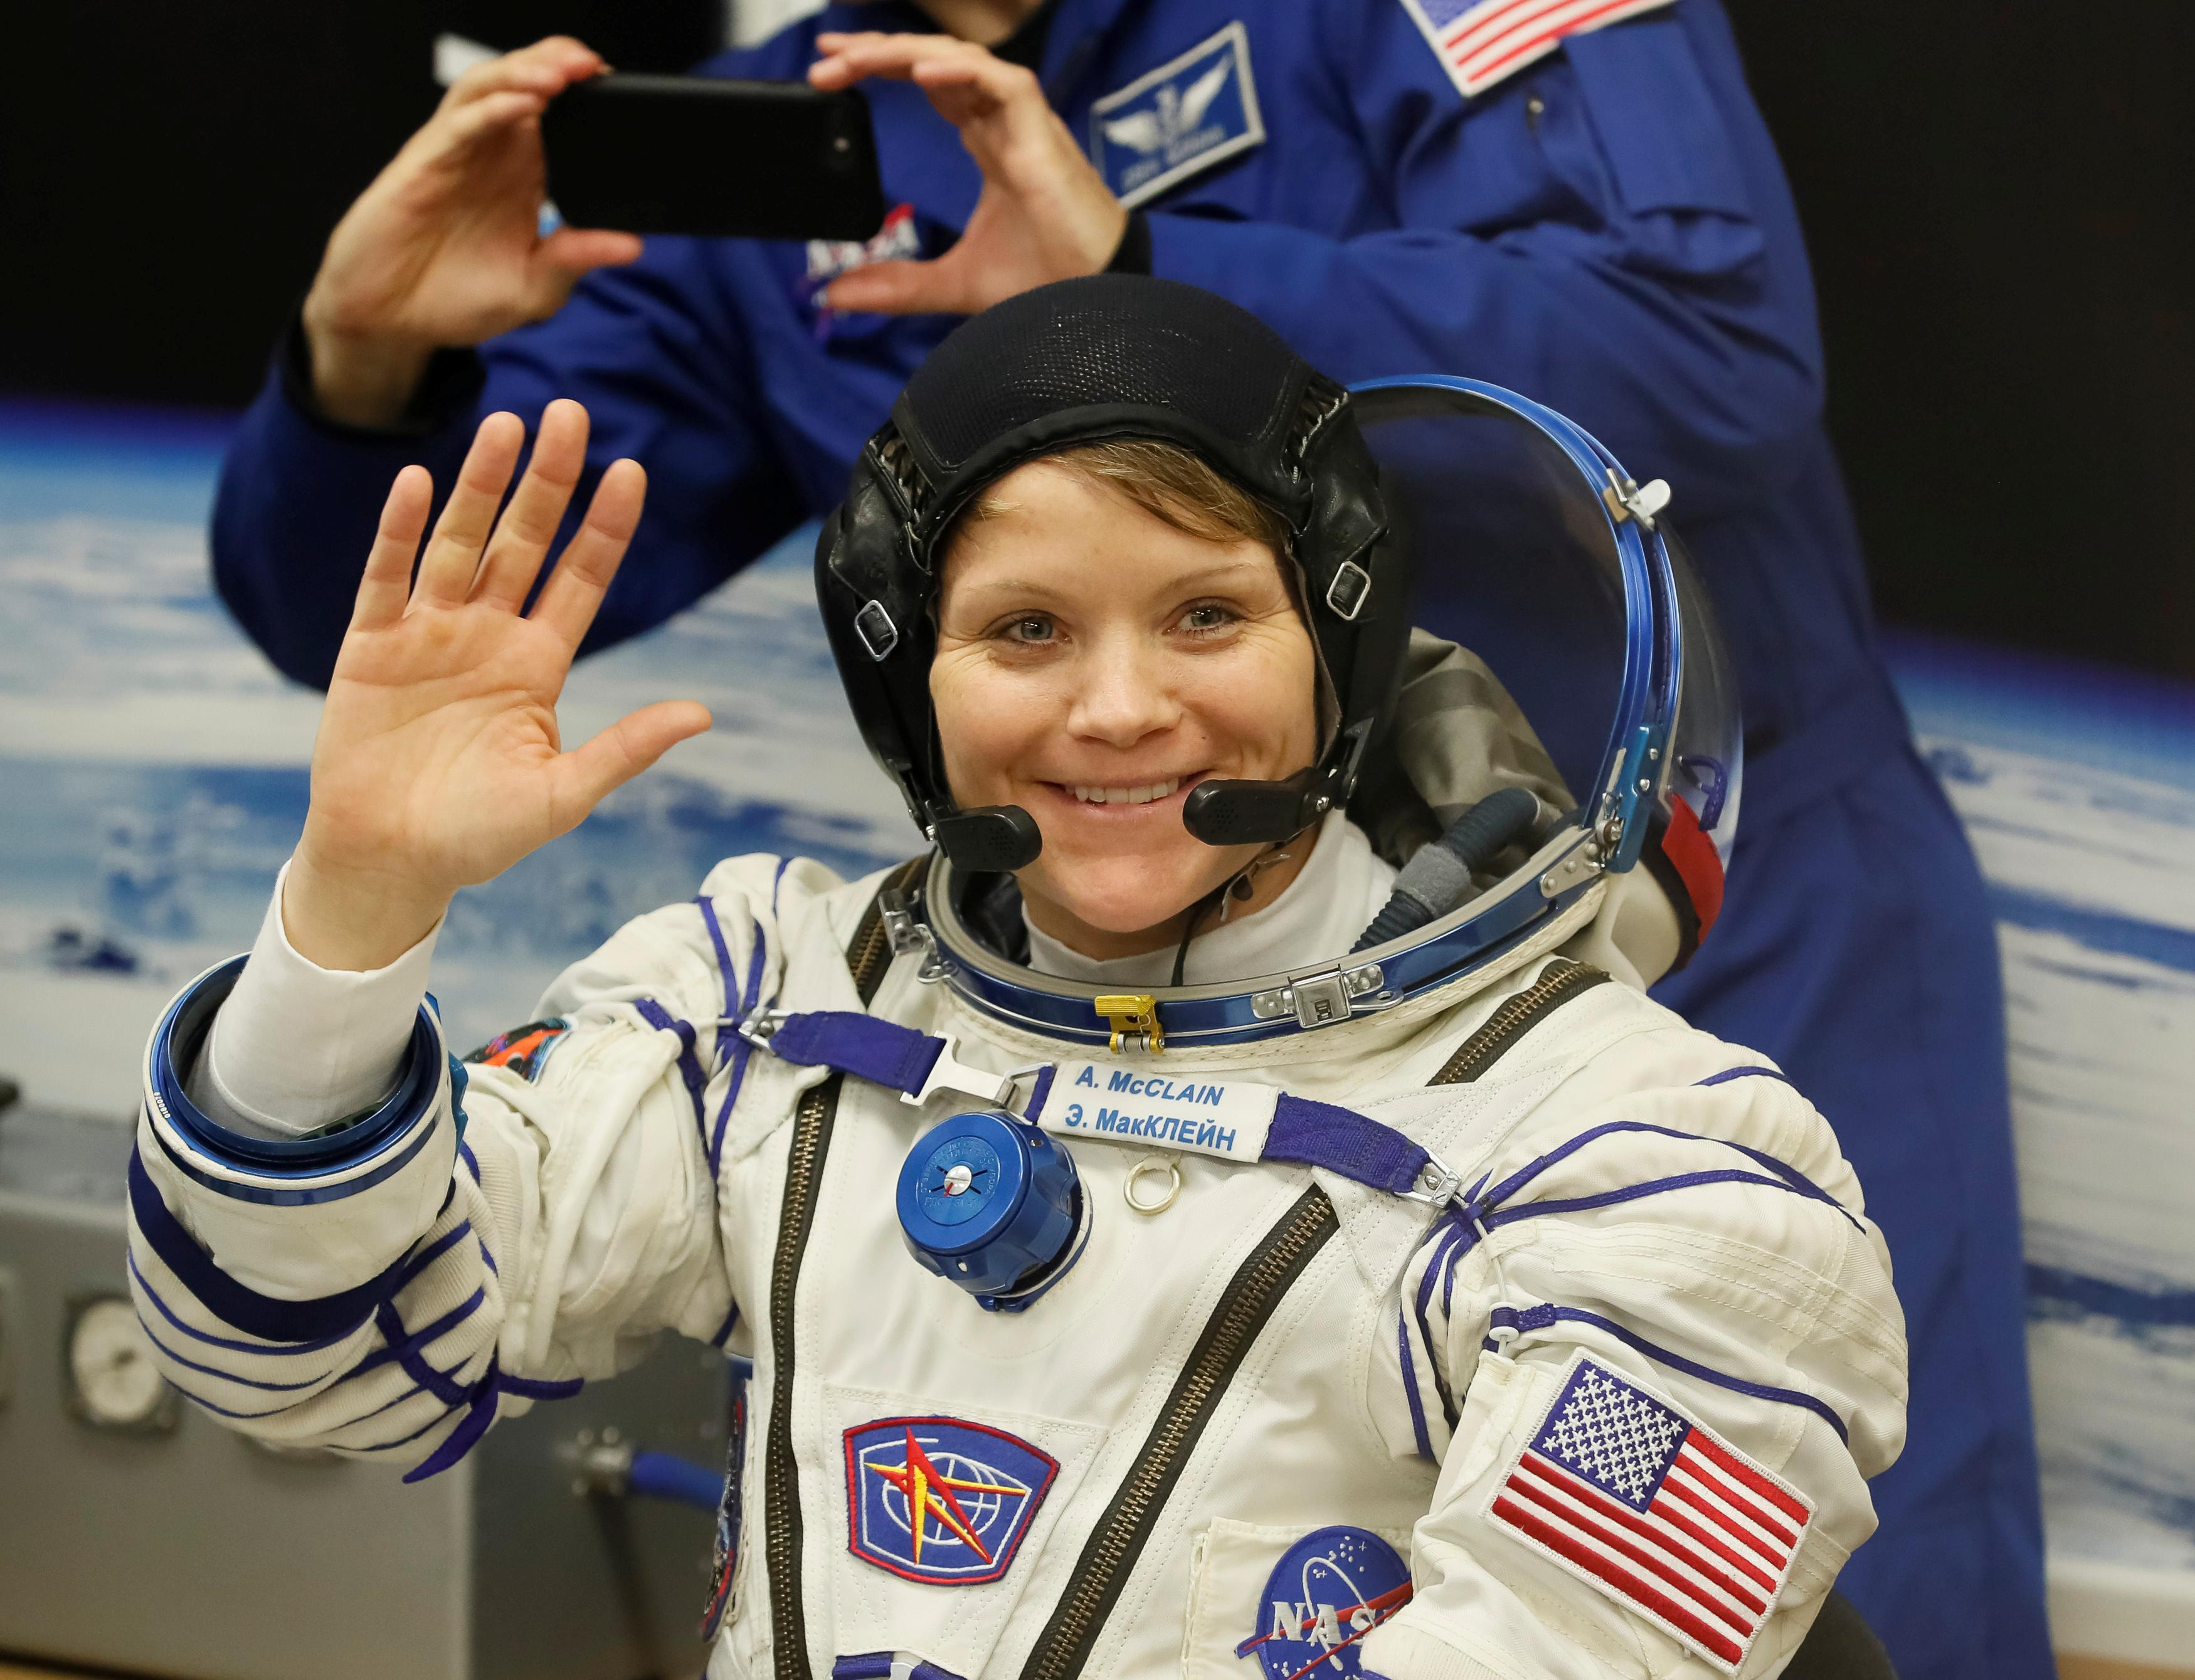 Nasa investigates space crime after 'astronaut accesses partner's bank account while on International Space Station' - Yahoo India News